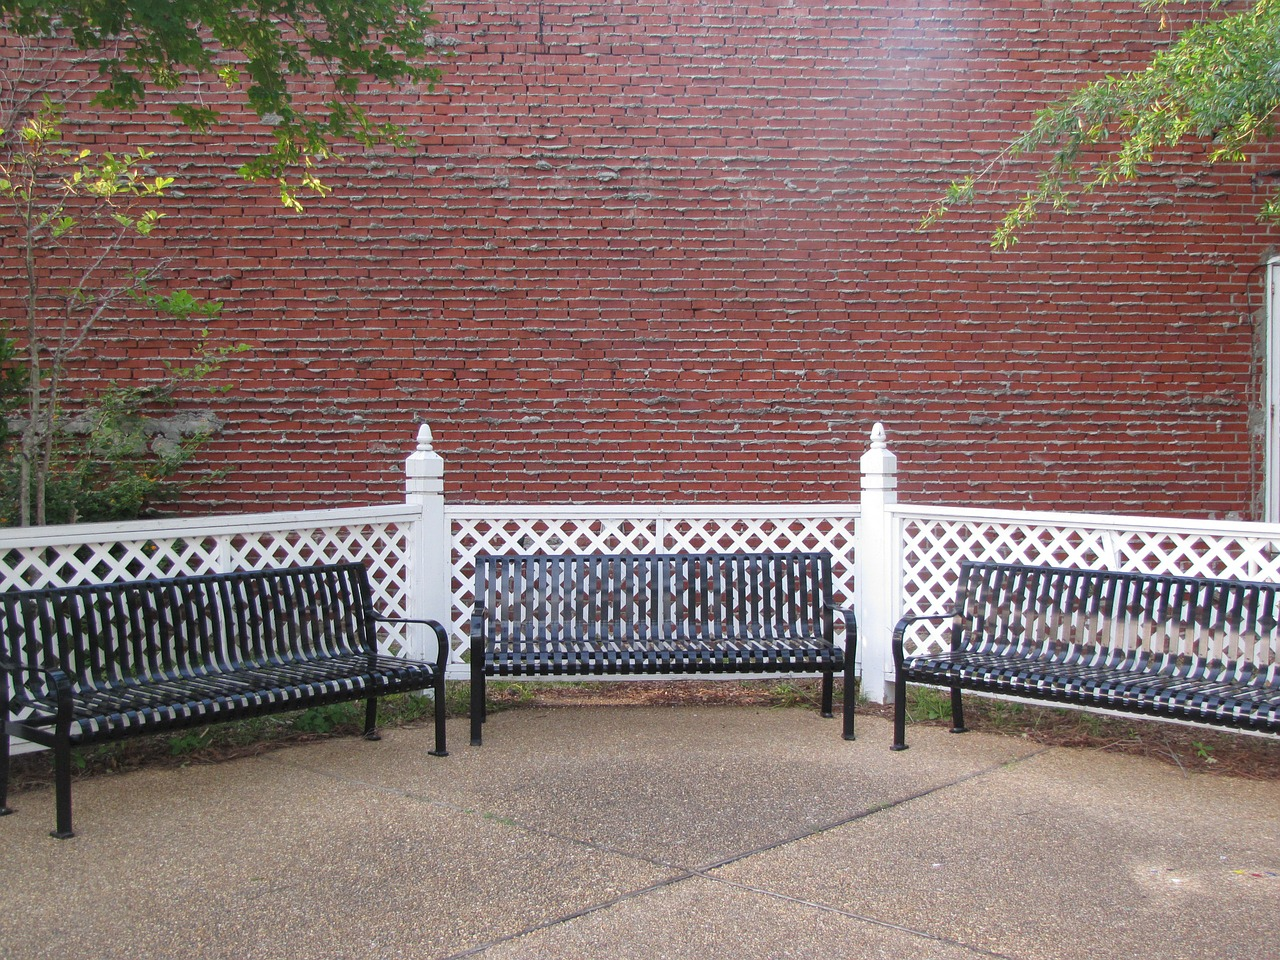 brick,wall,background,bench,rest,sit,relax,free pictures, free photos, free images, royalty free, free illustrations